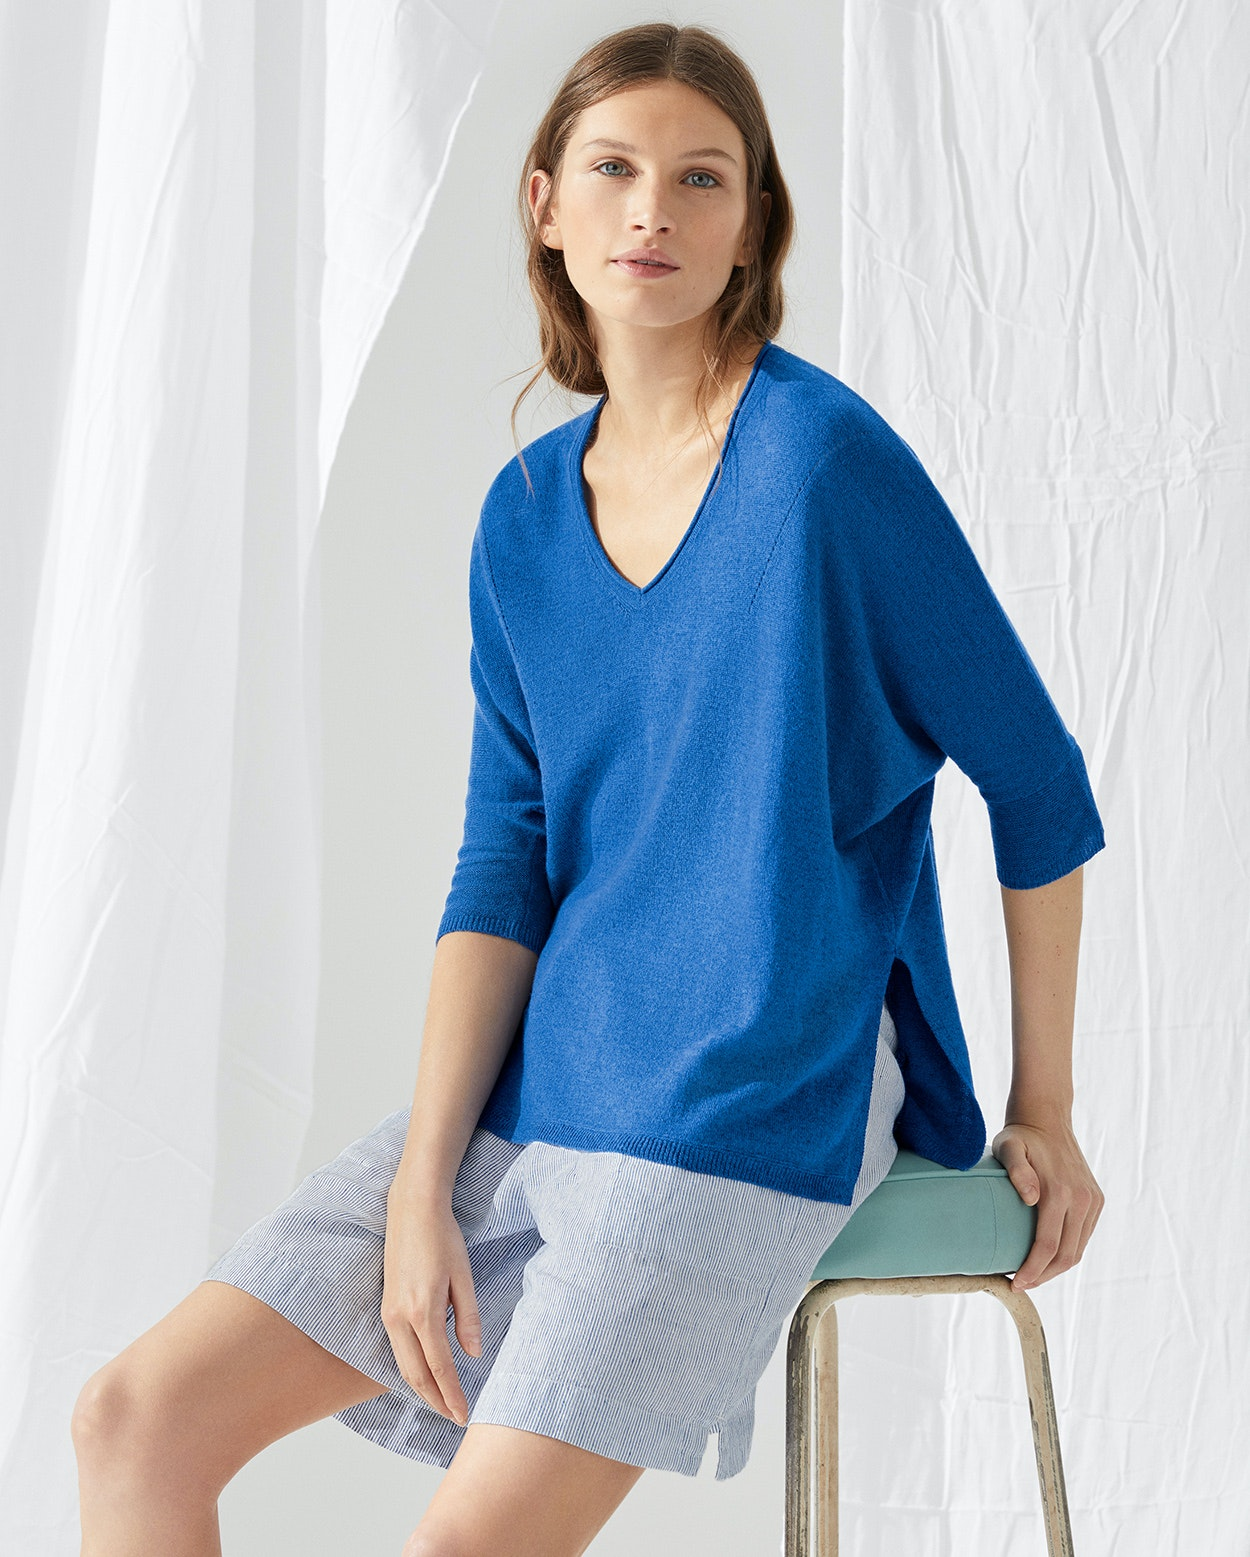 d8974f7534cd5c Image of Cashmere and linen v-neck sweater